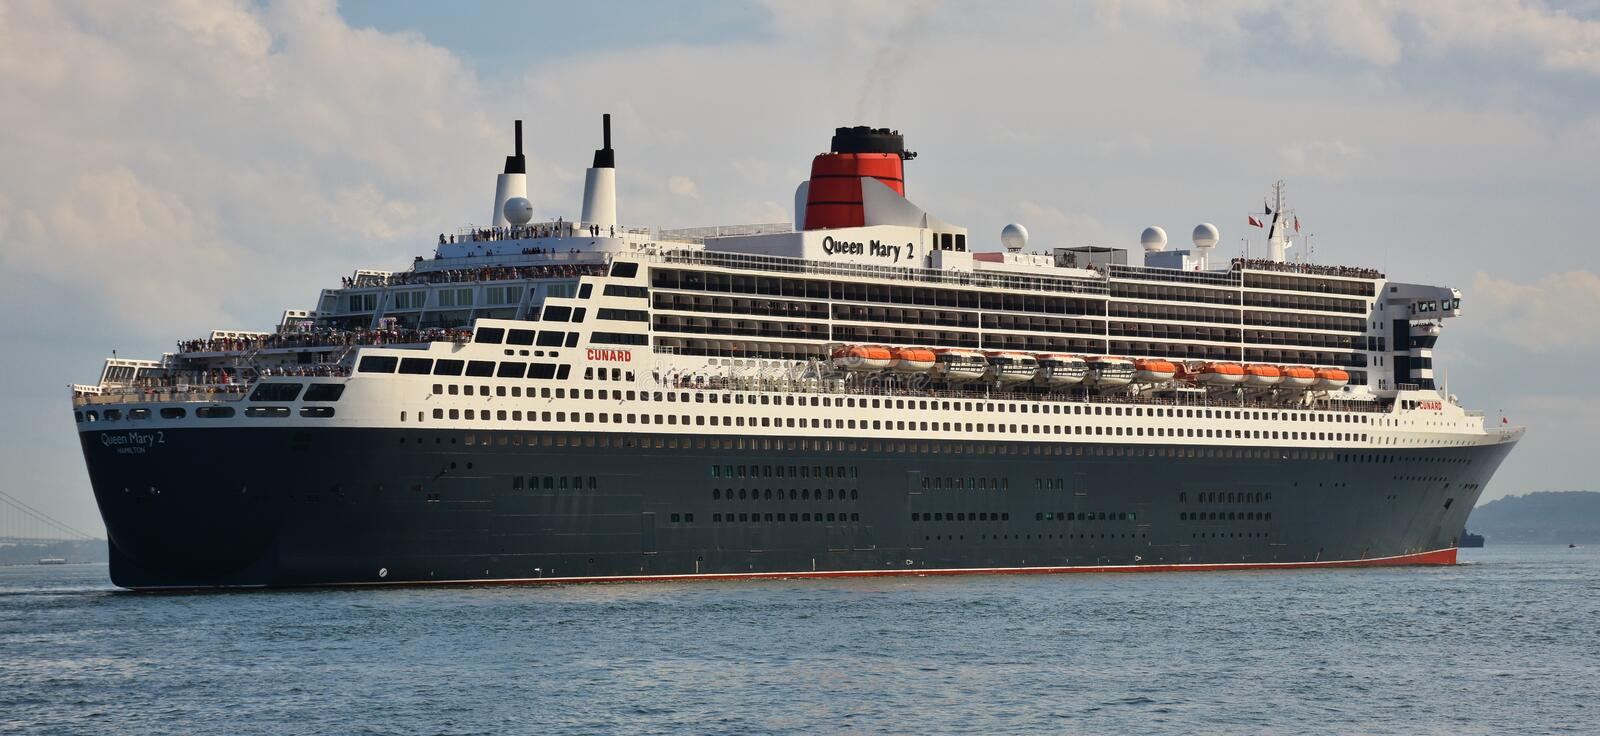 RMS Queen Mary 2 Oceanliner royalty free stock image